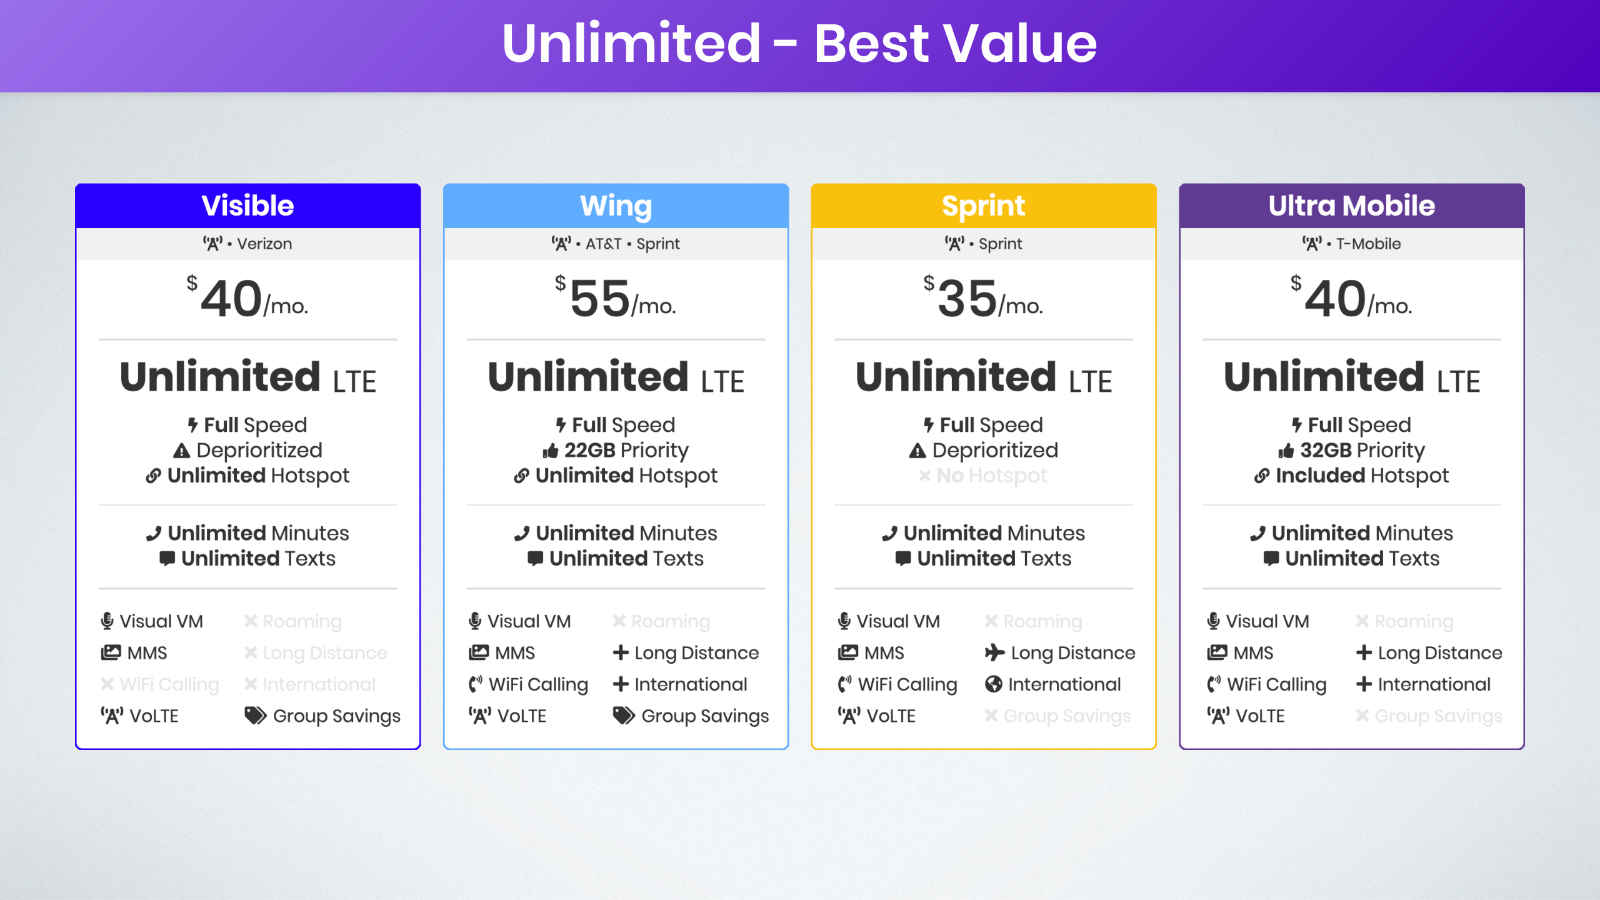 best value unlimited data plans on Verizon, AT&T, Sprint, and T-Mobile